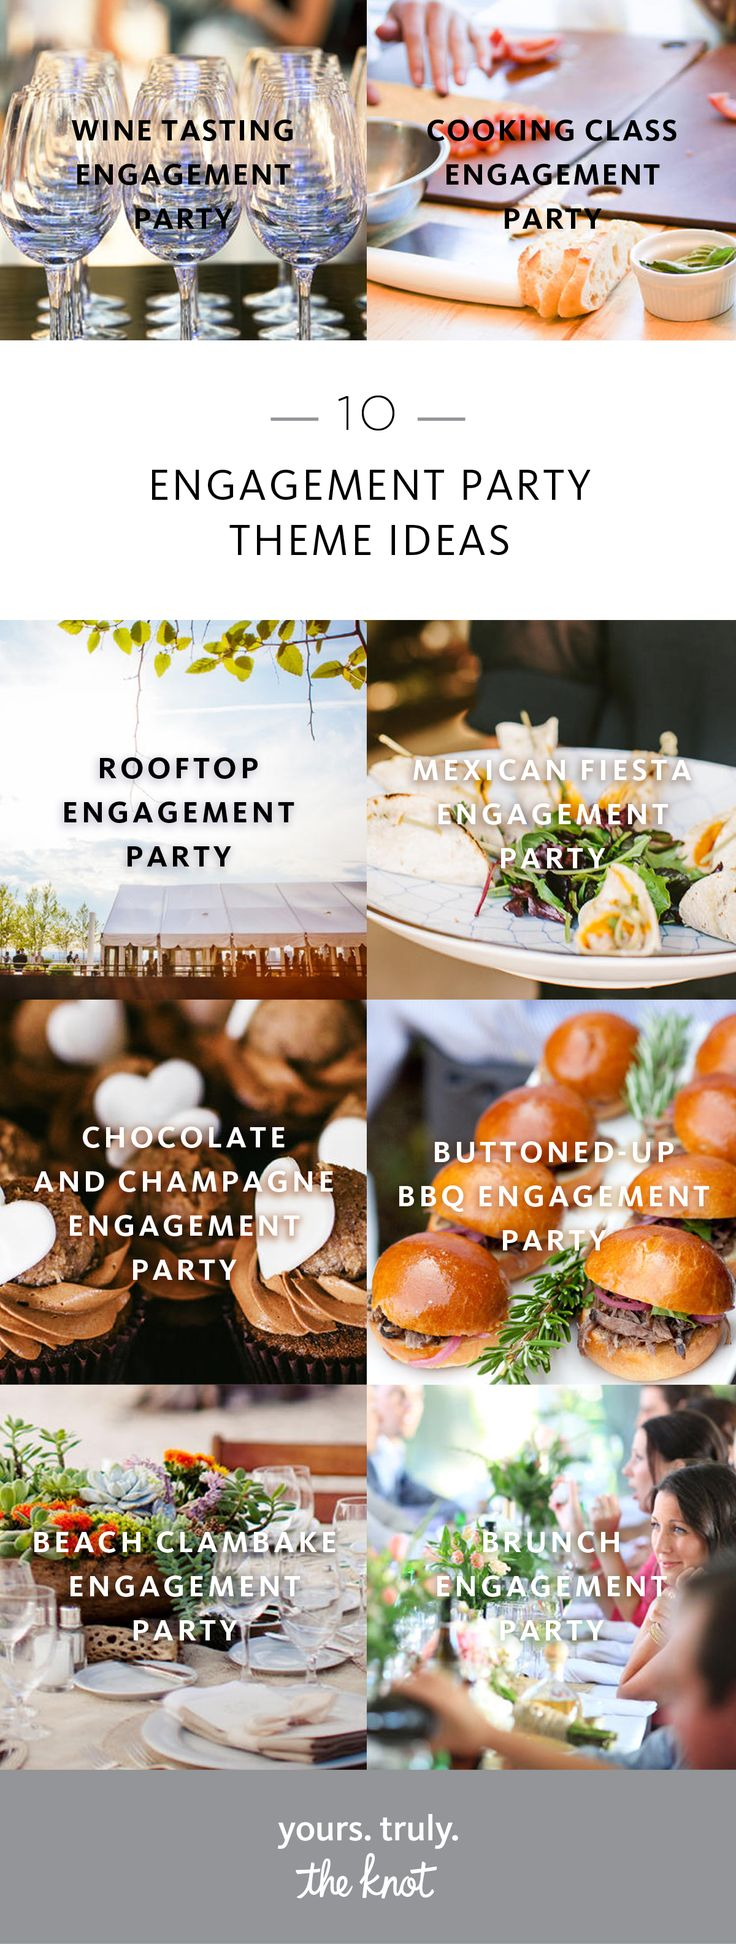 We have the key to throwing the perfect engagement party: Finding a theme that fits the couple of honor.